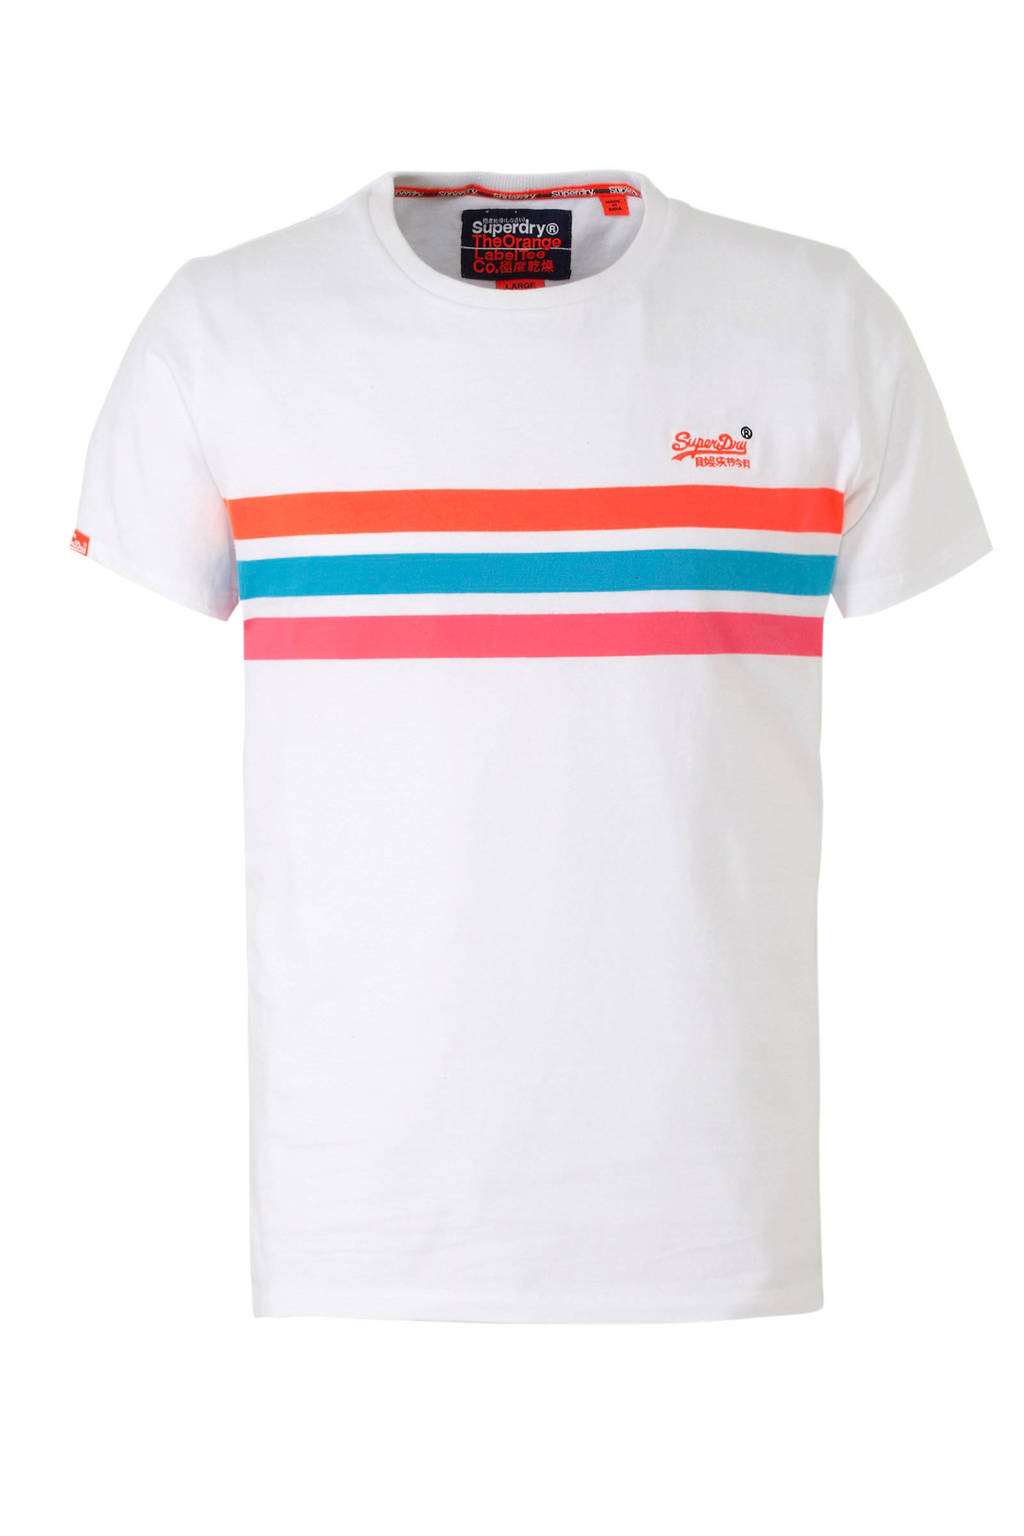 Superdry T-shirt met strepen, Wit